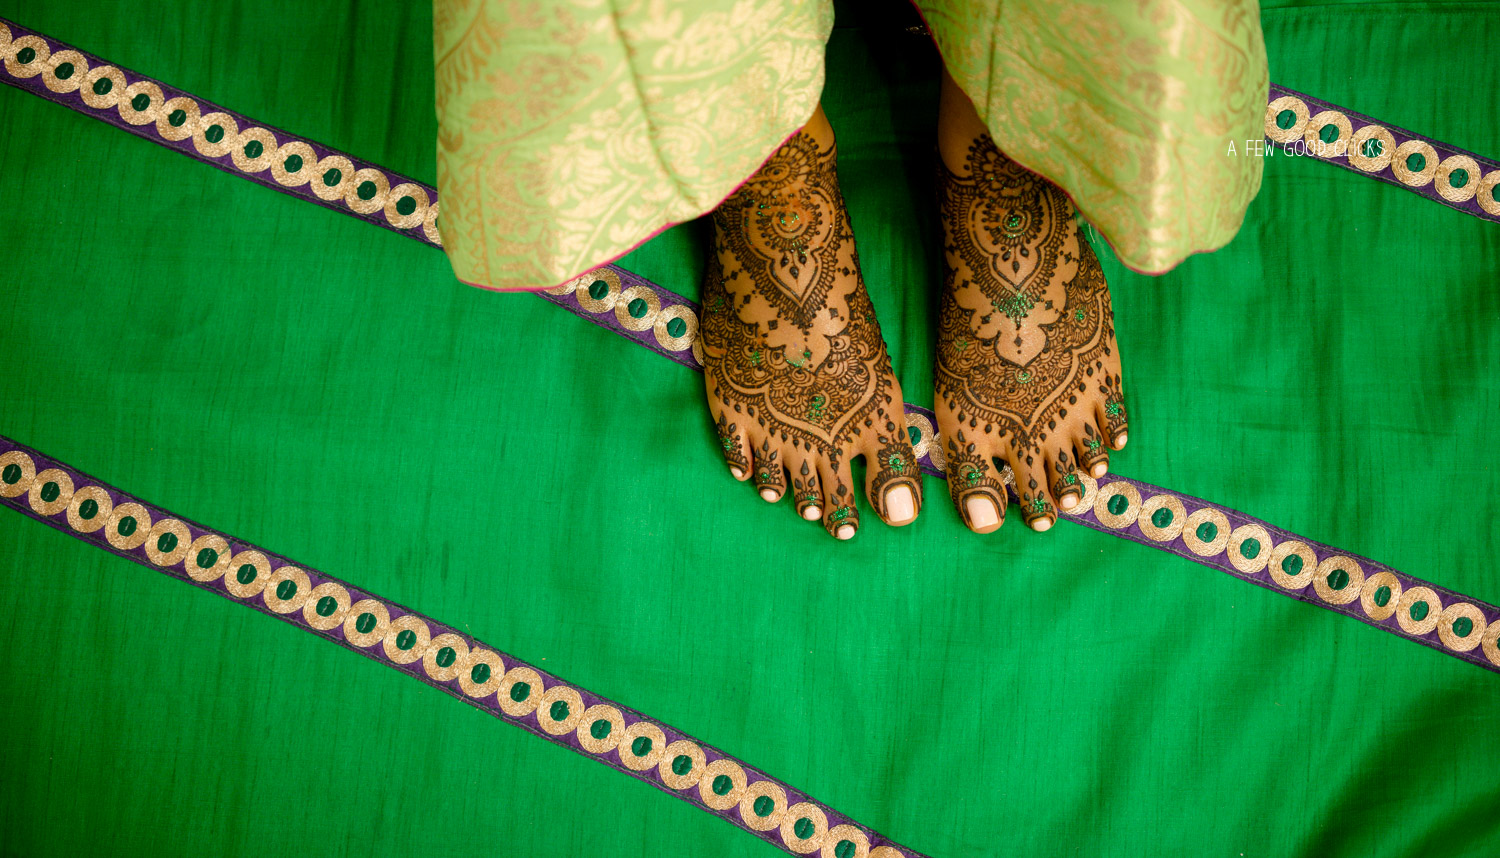 Mehndi design on green backdrop - My personal favourite.